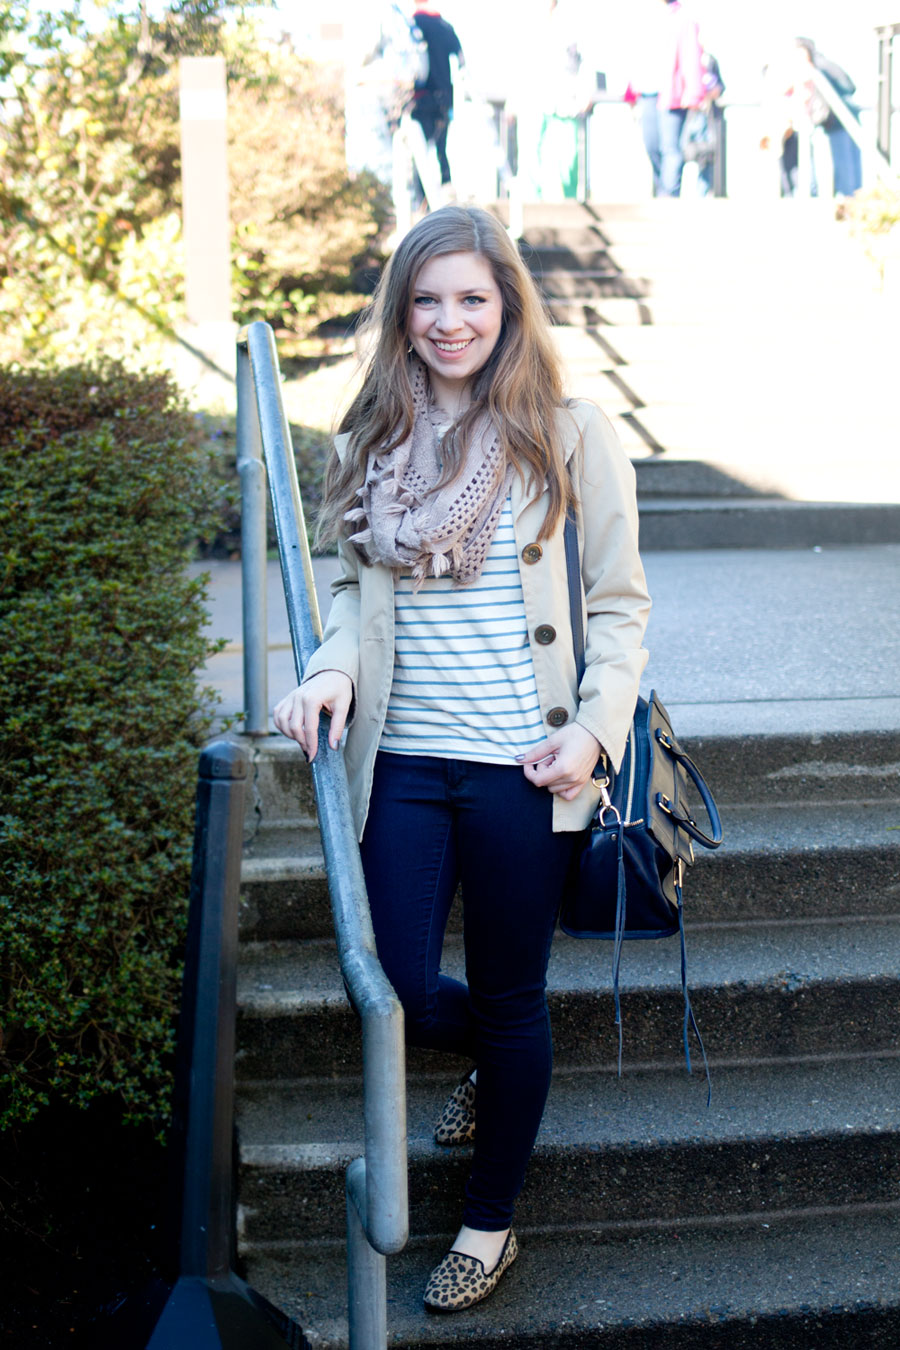 Salish Lodge & Spa and Striped Animal Print Outfit / hellorigby seattle fashion & travel blog